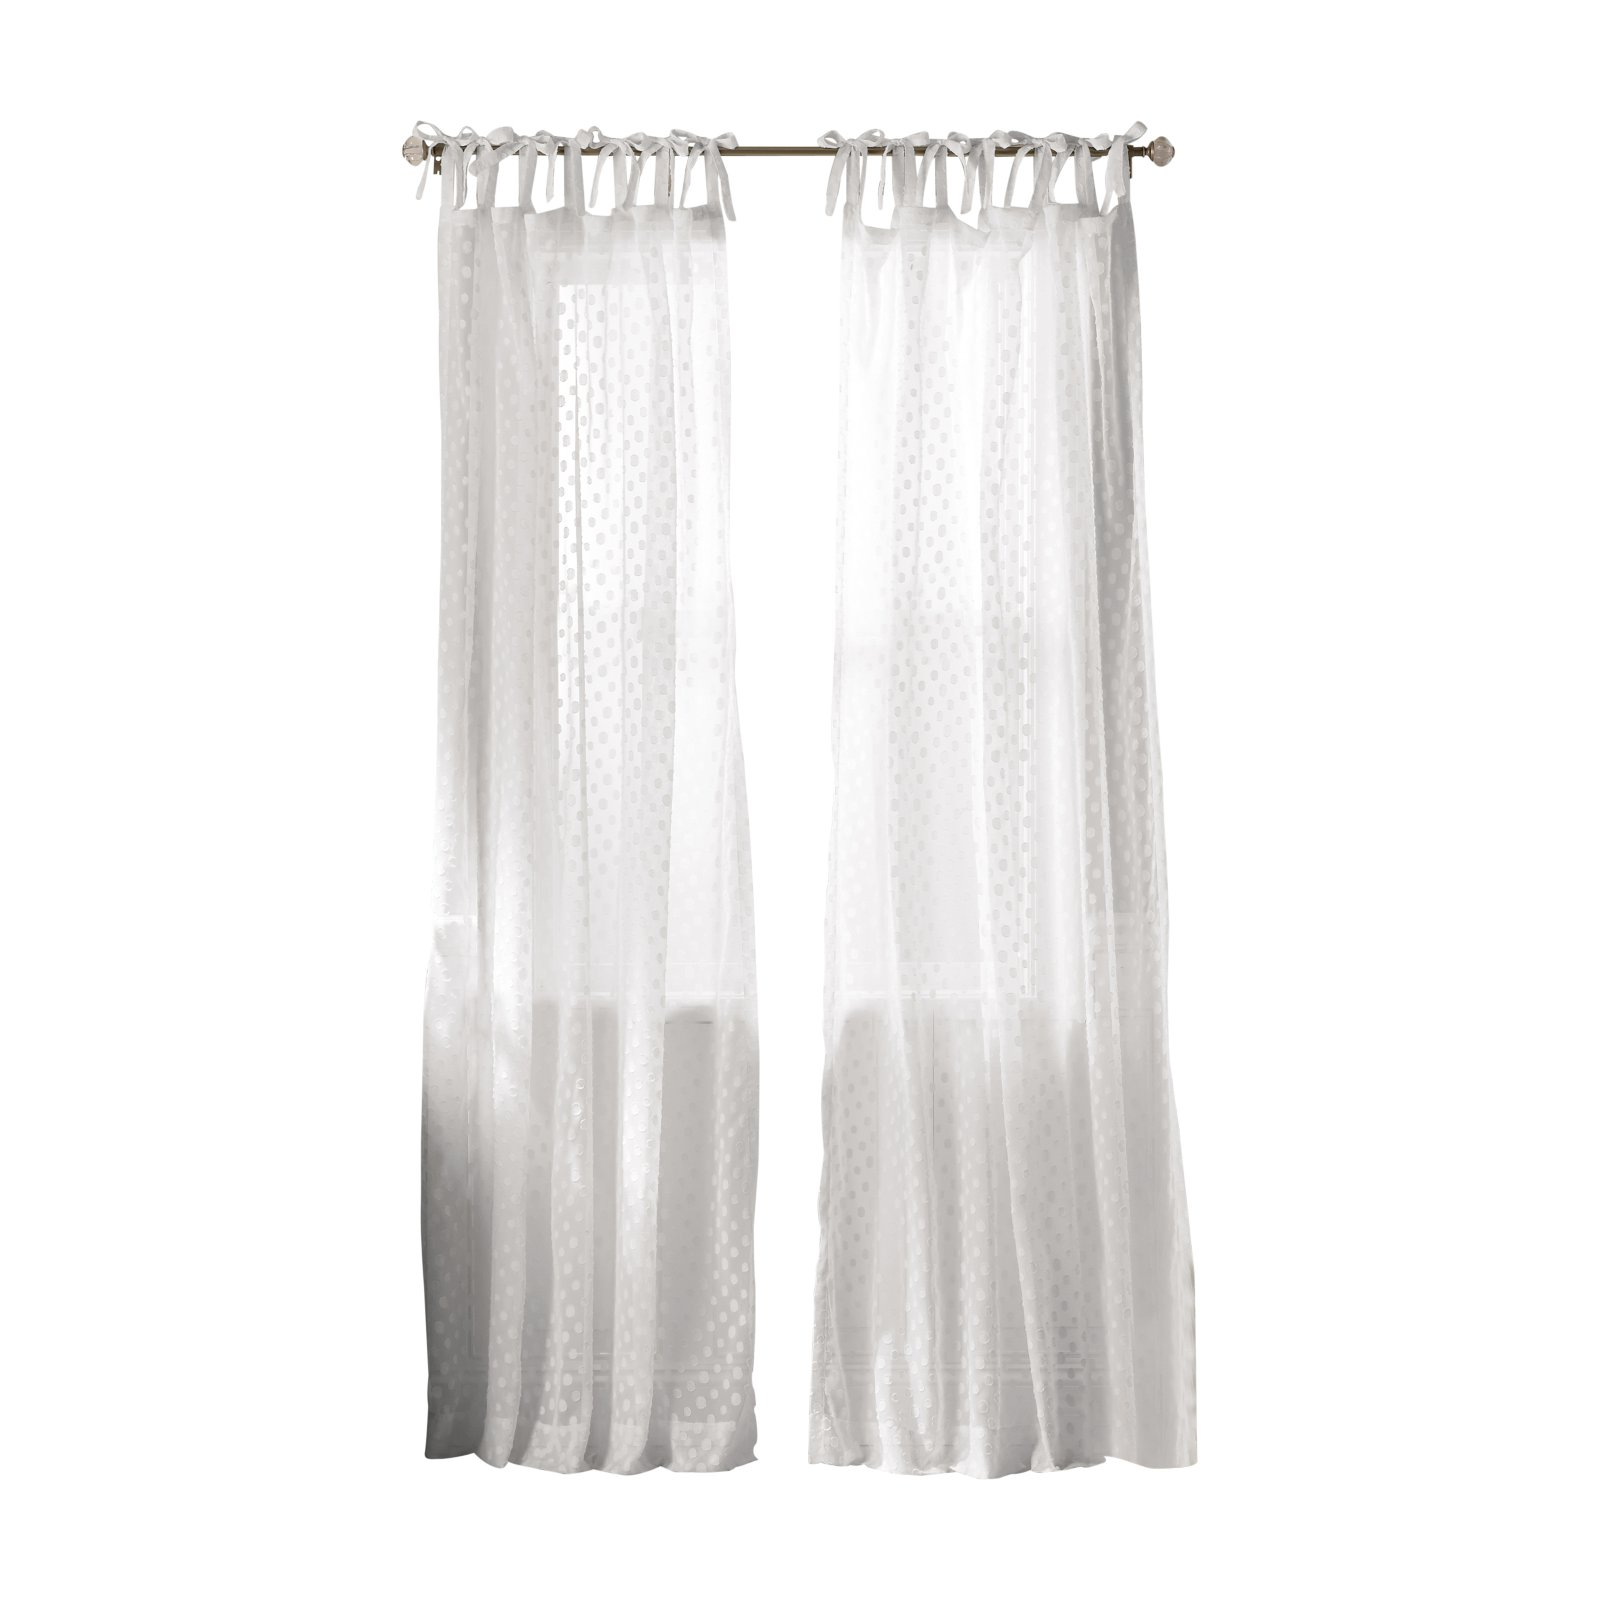 The Pioneer Woman Darling Dot Tab Top Curtain Panel White White